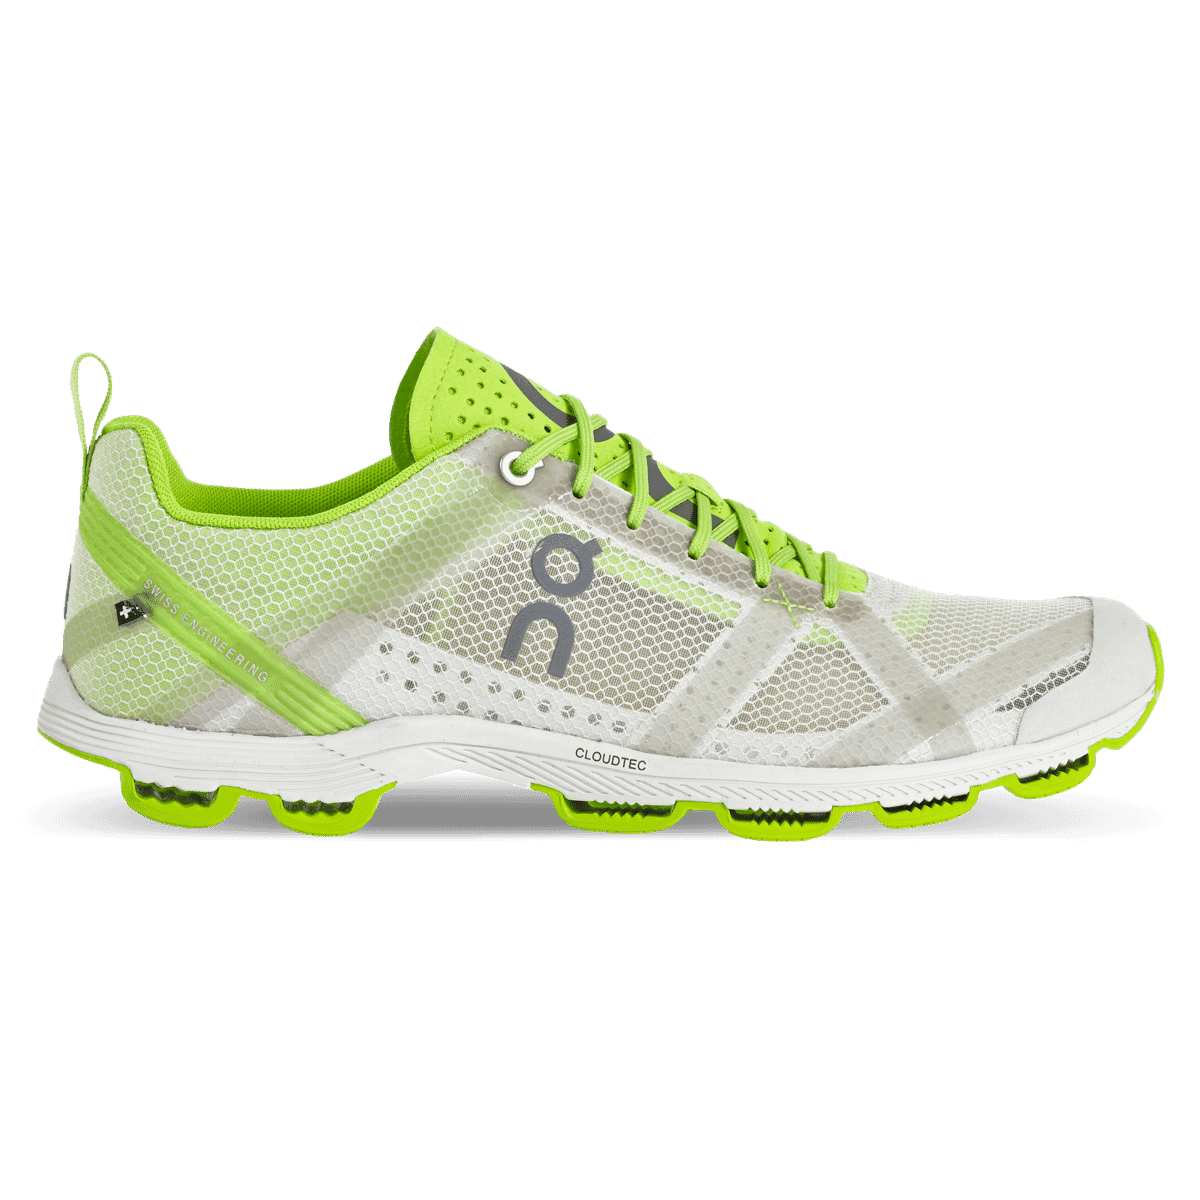 CloudracerAwarded Running On On Performance Shoe Running Shoe Running On CloudracerAwarded Performance Performance CloudracerAwarded EBordCQxWe